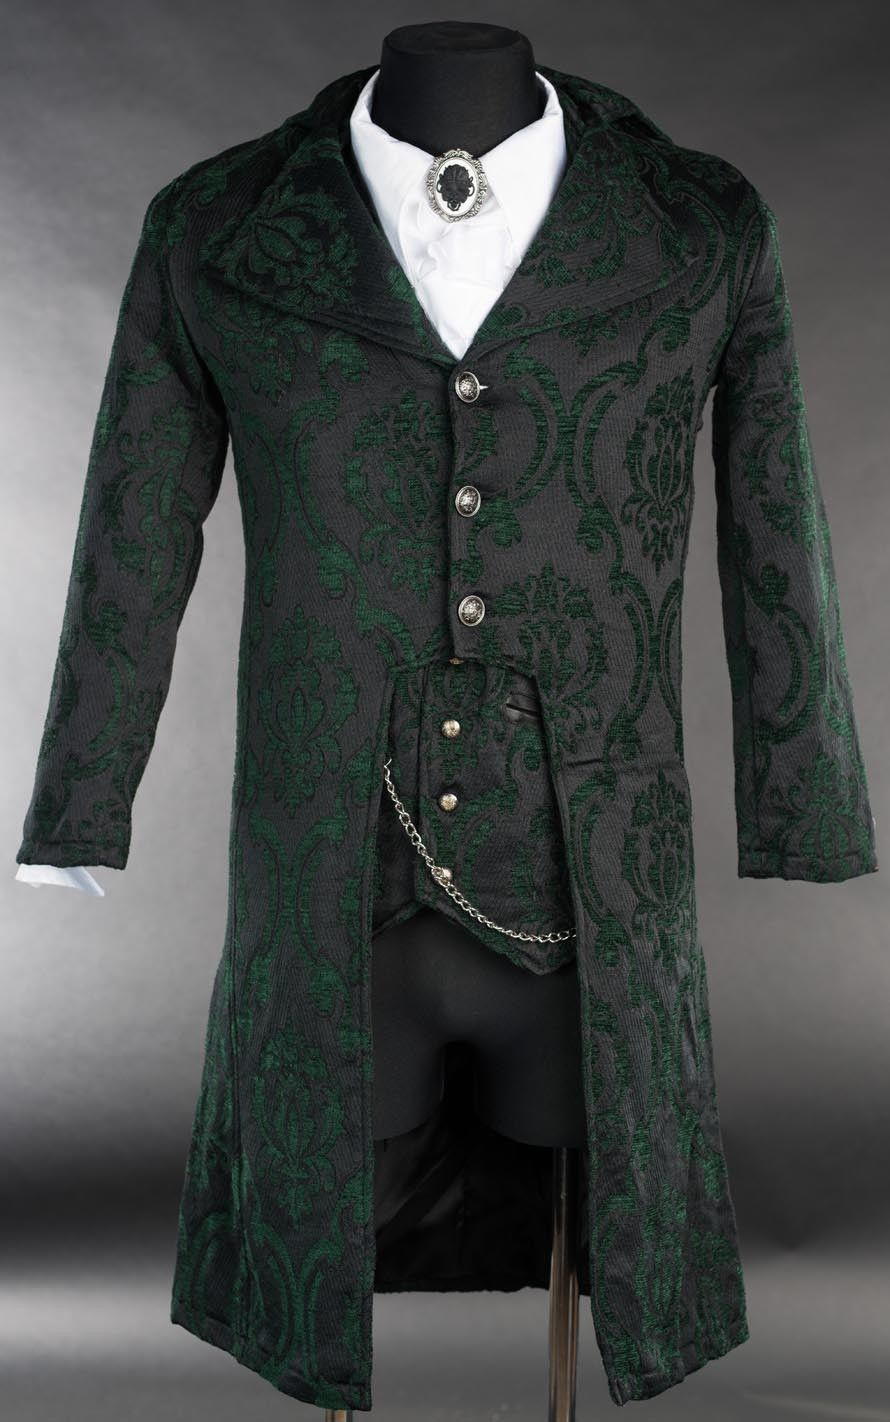 Primary image for NWT Men's Black Green Brocade Victorian Goth Vampire Tailcoat Jacket